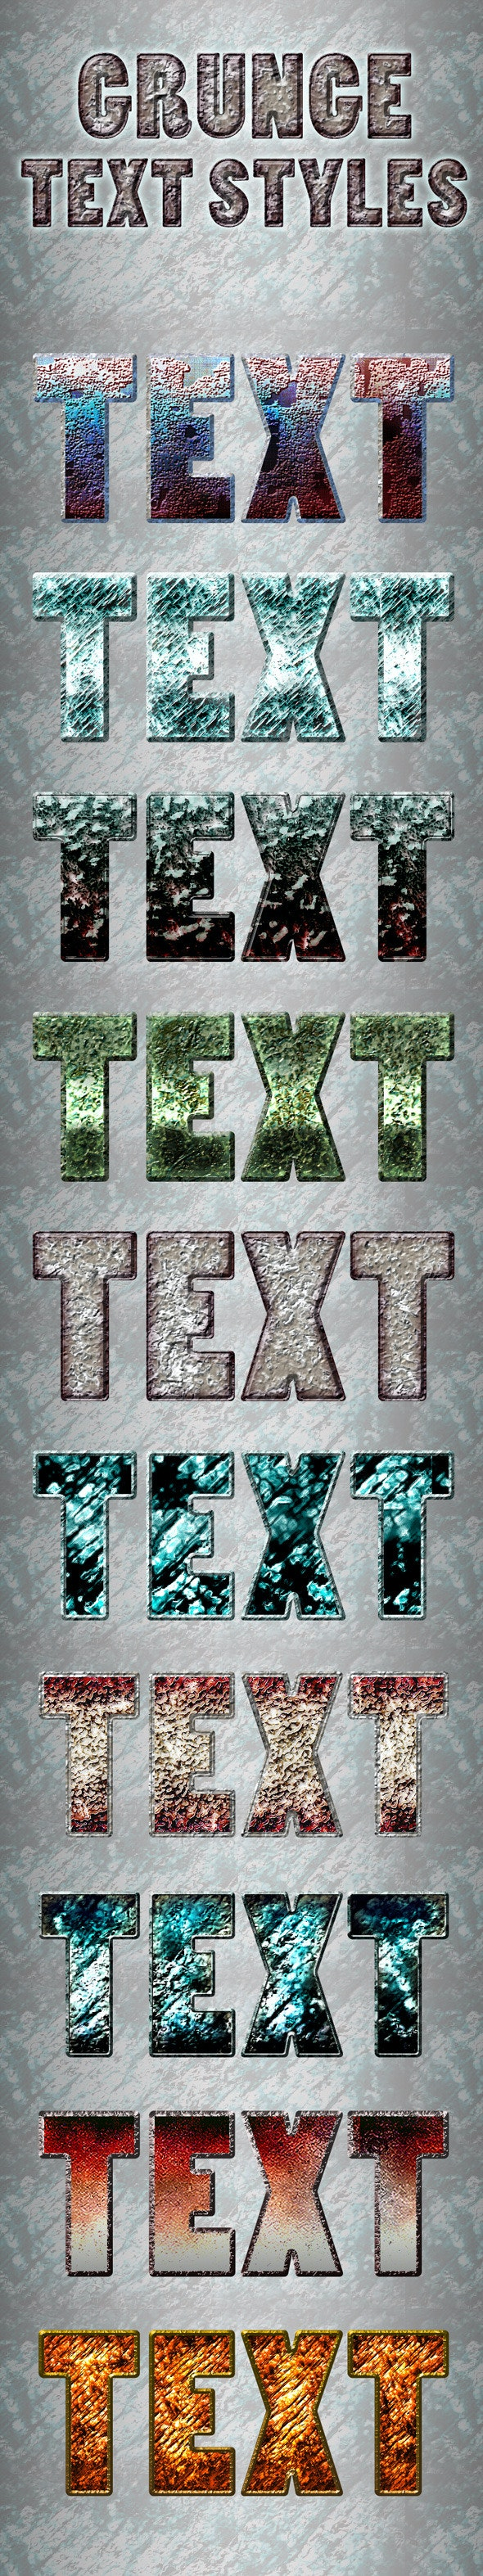 Grunge Text Styles - Text Effects Styles